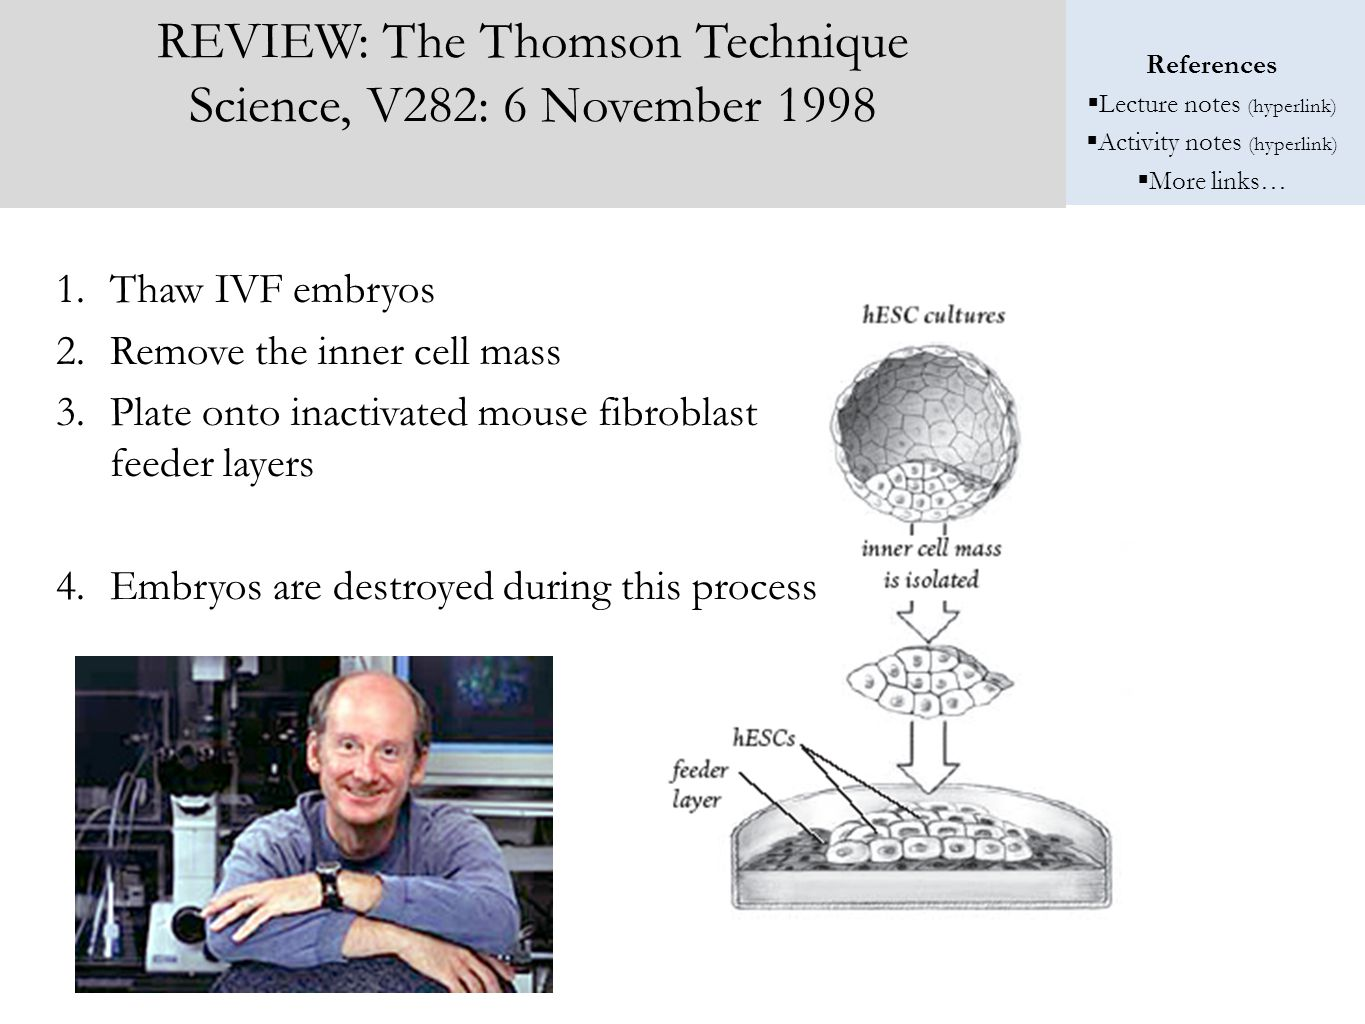 References  Lecture notes (hyperlink)  Activity notes (hyperlink)  More links… REVIEW: The Thomson Technique Science, V282: 6 November 1998 1.Thaw IVF embryos 2.Remove the inner cell mass 3.Plate onto inactivated mouse fibroblast feeder layers 4.Embryos are destroyed during this process